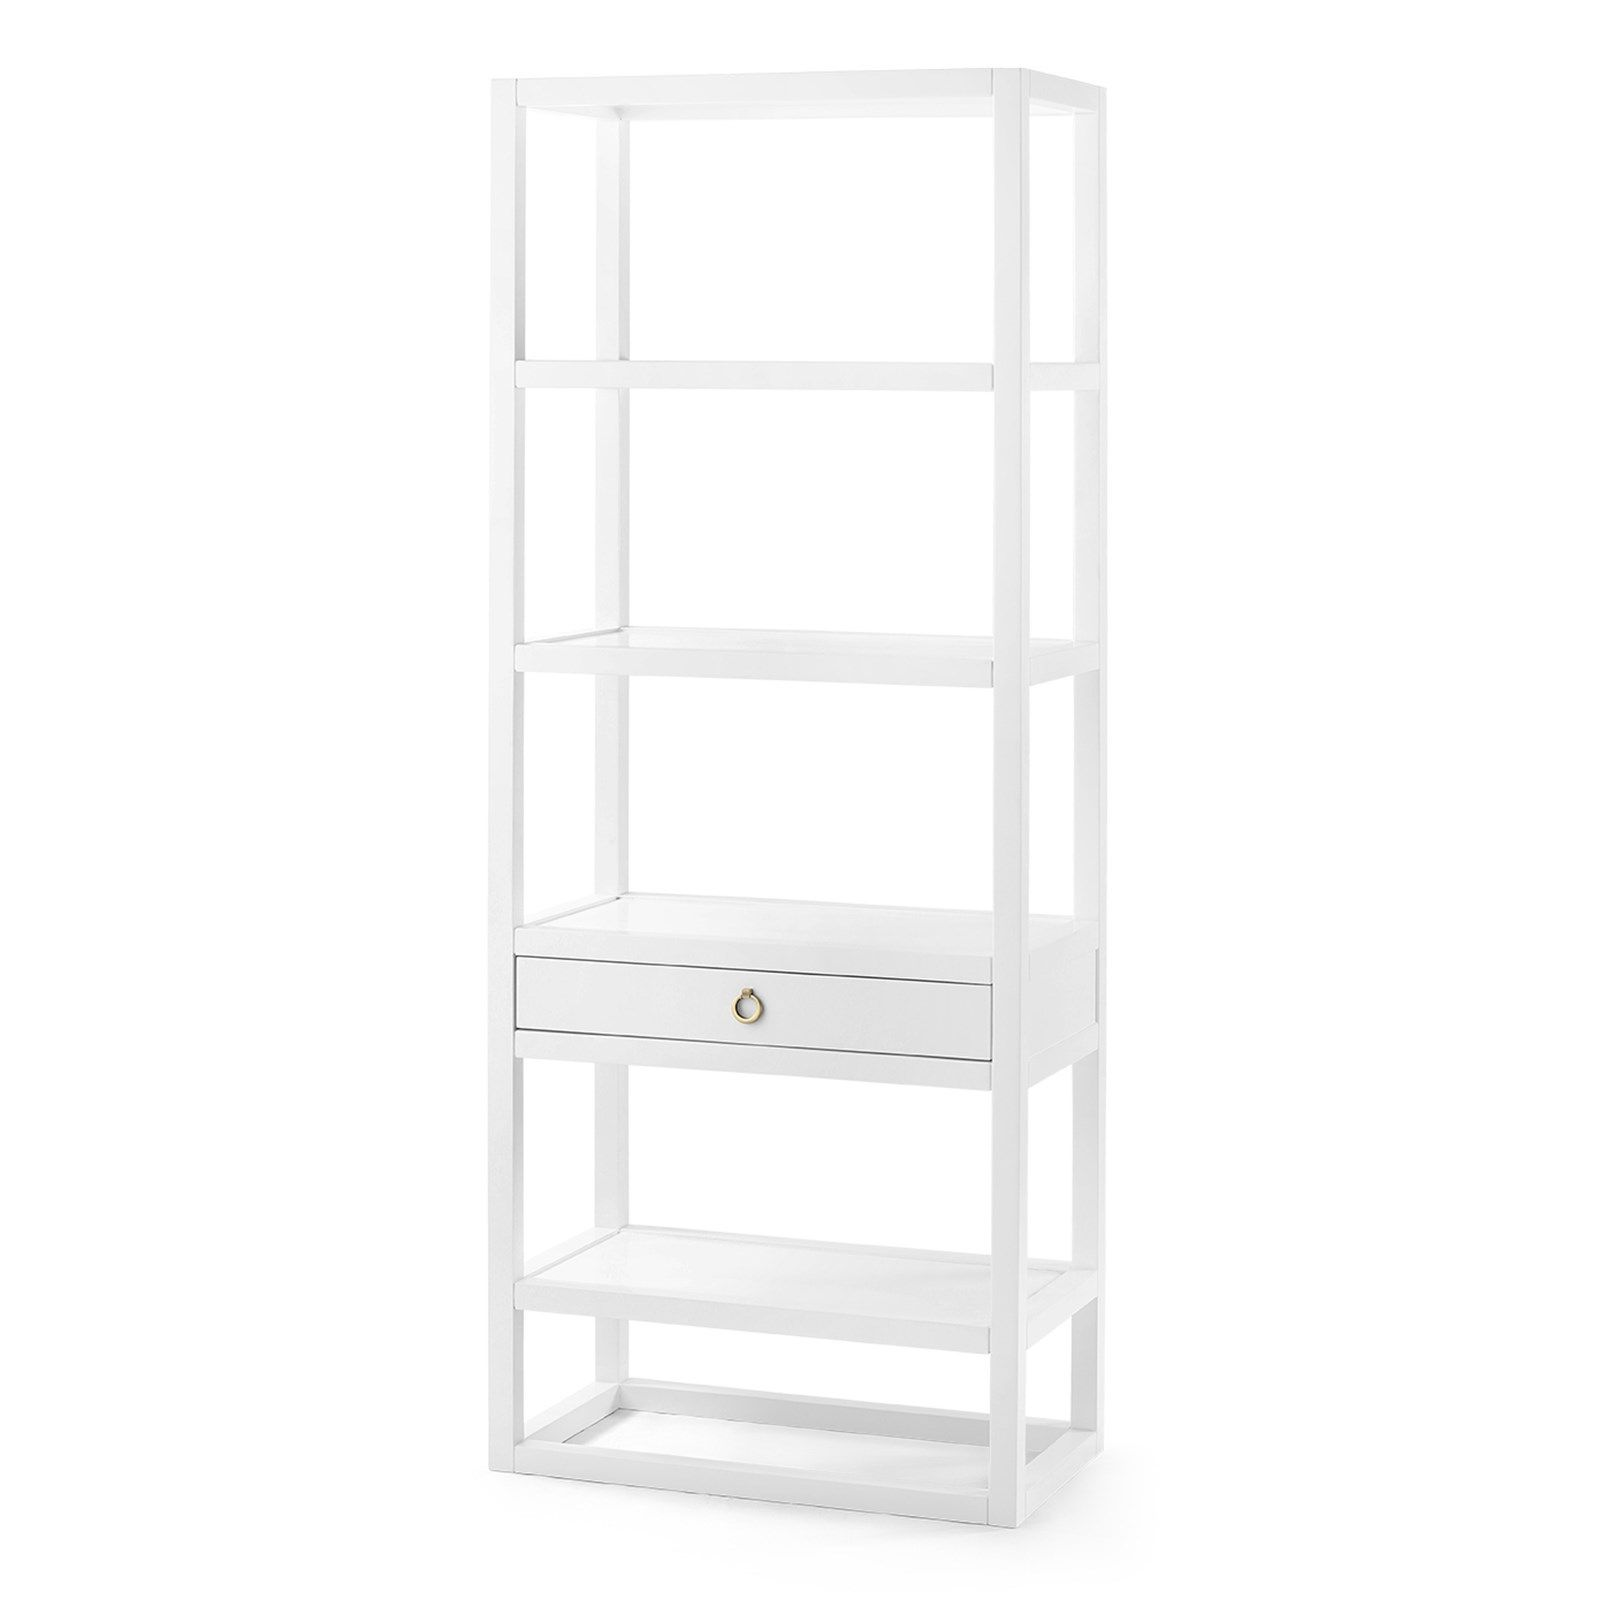 Newport Etagere, White - Bungalow 5  30Wx16.5Dx78H    Cost - $1273 + 20%